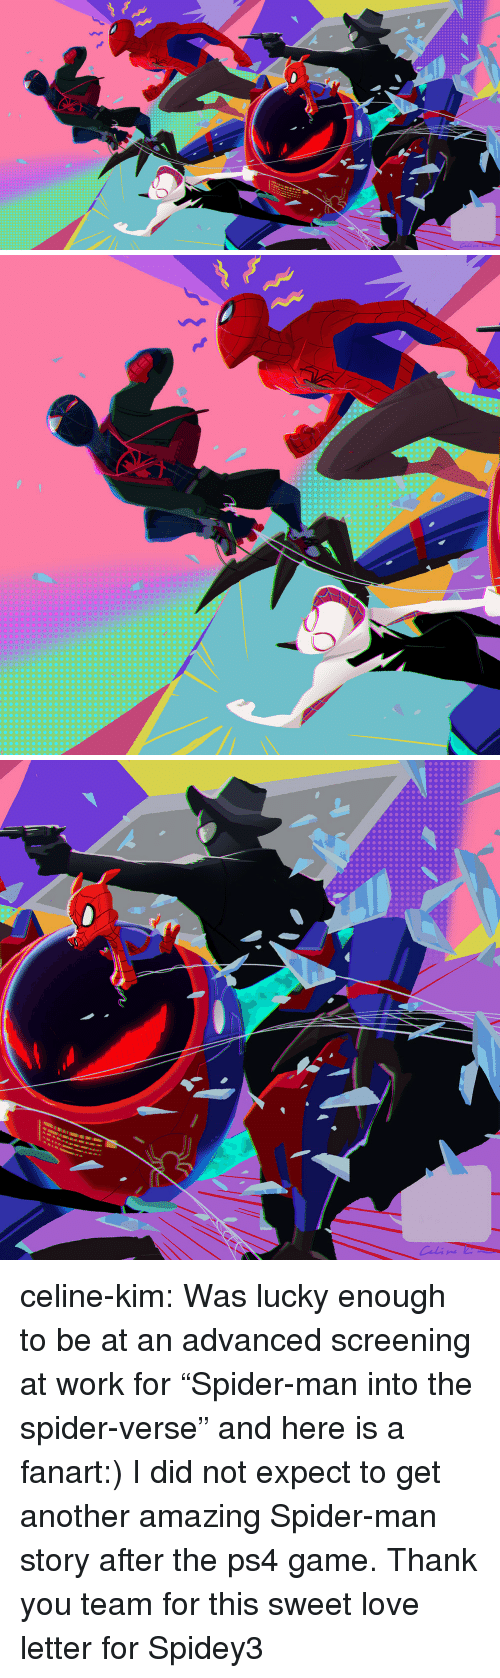 "Love, Ps4, and Spider: celine-kim:  Was lucky enough to be at an advanced screening at work for ""Spider-man into the spider-verse"" and here is a fanart:) I did not expect to get another amazing Spider-man story after the ps4 game. Thank you team for this sweet love letter for Spidey3"